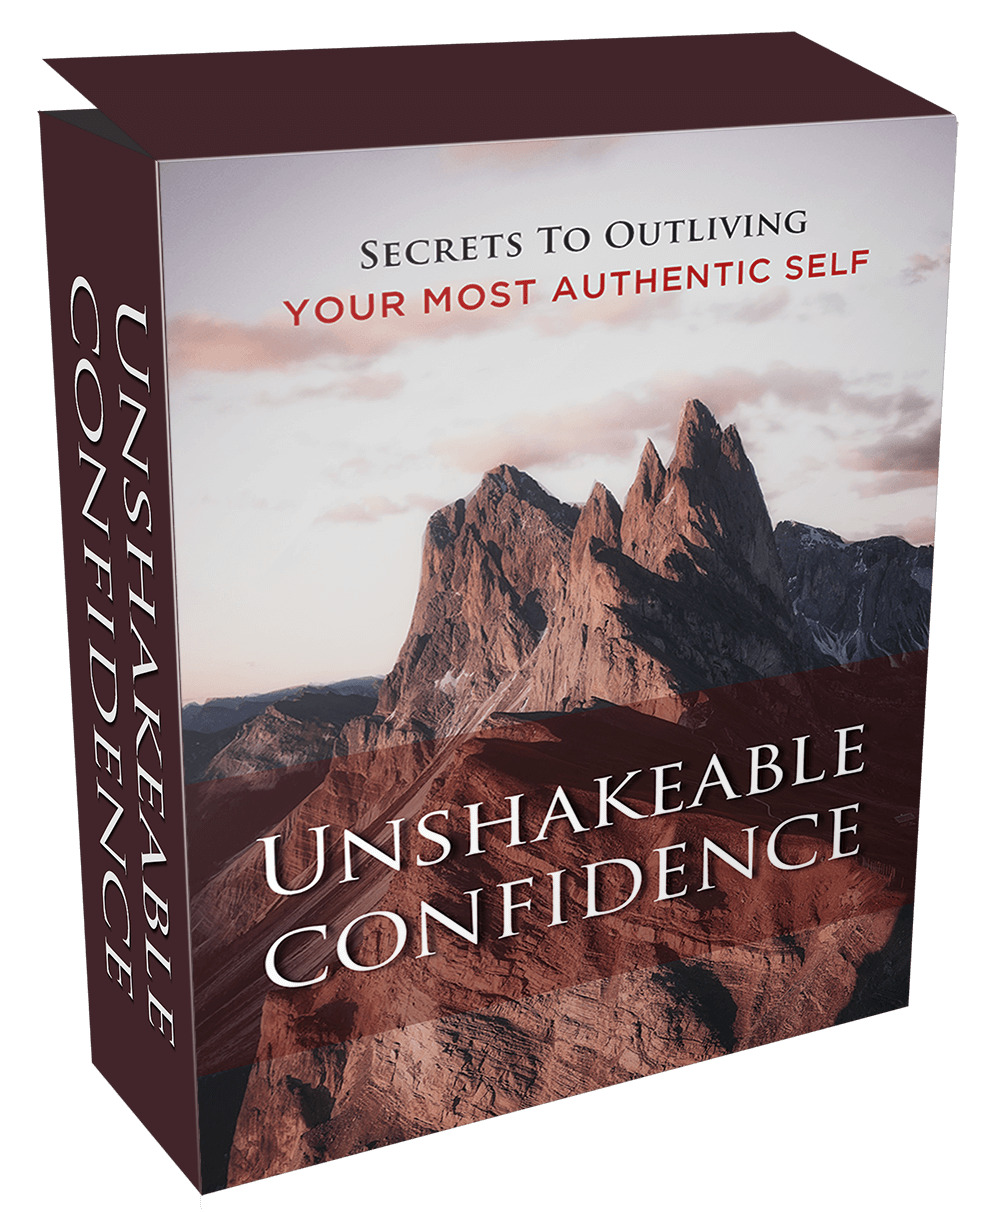 Unshakeable Confidence